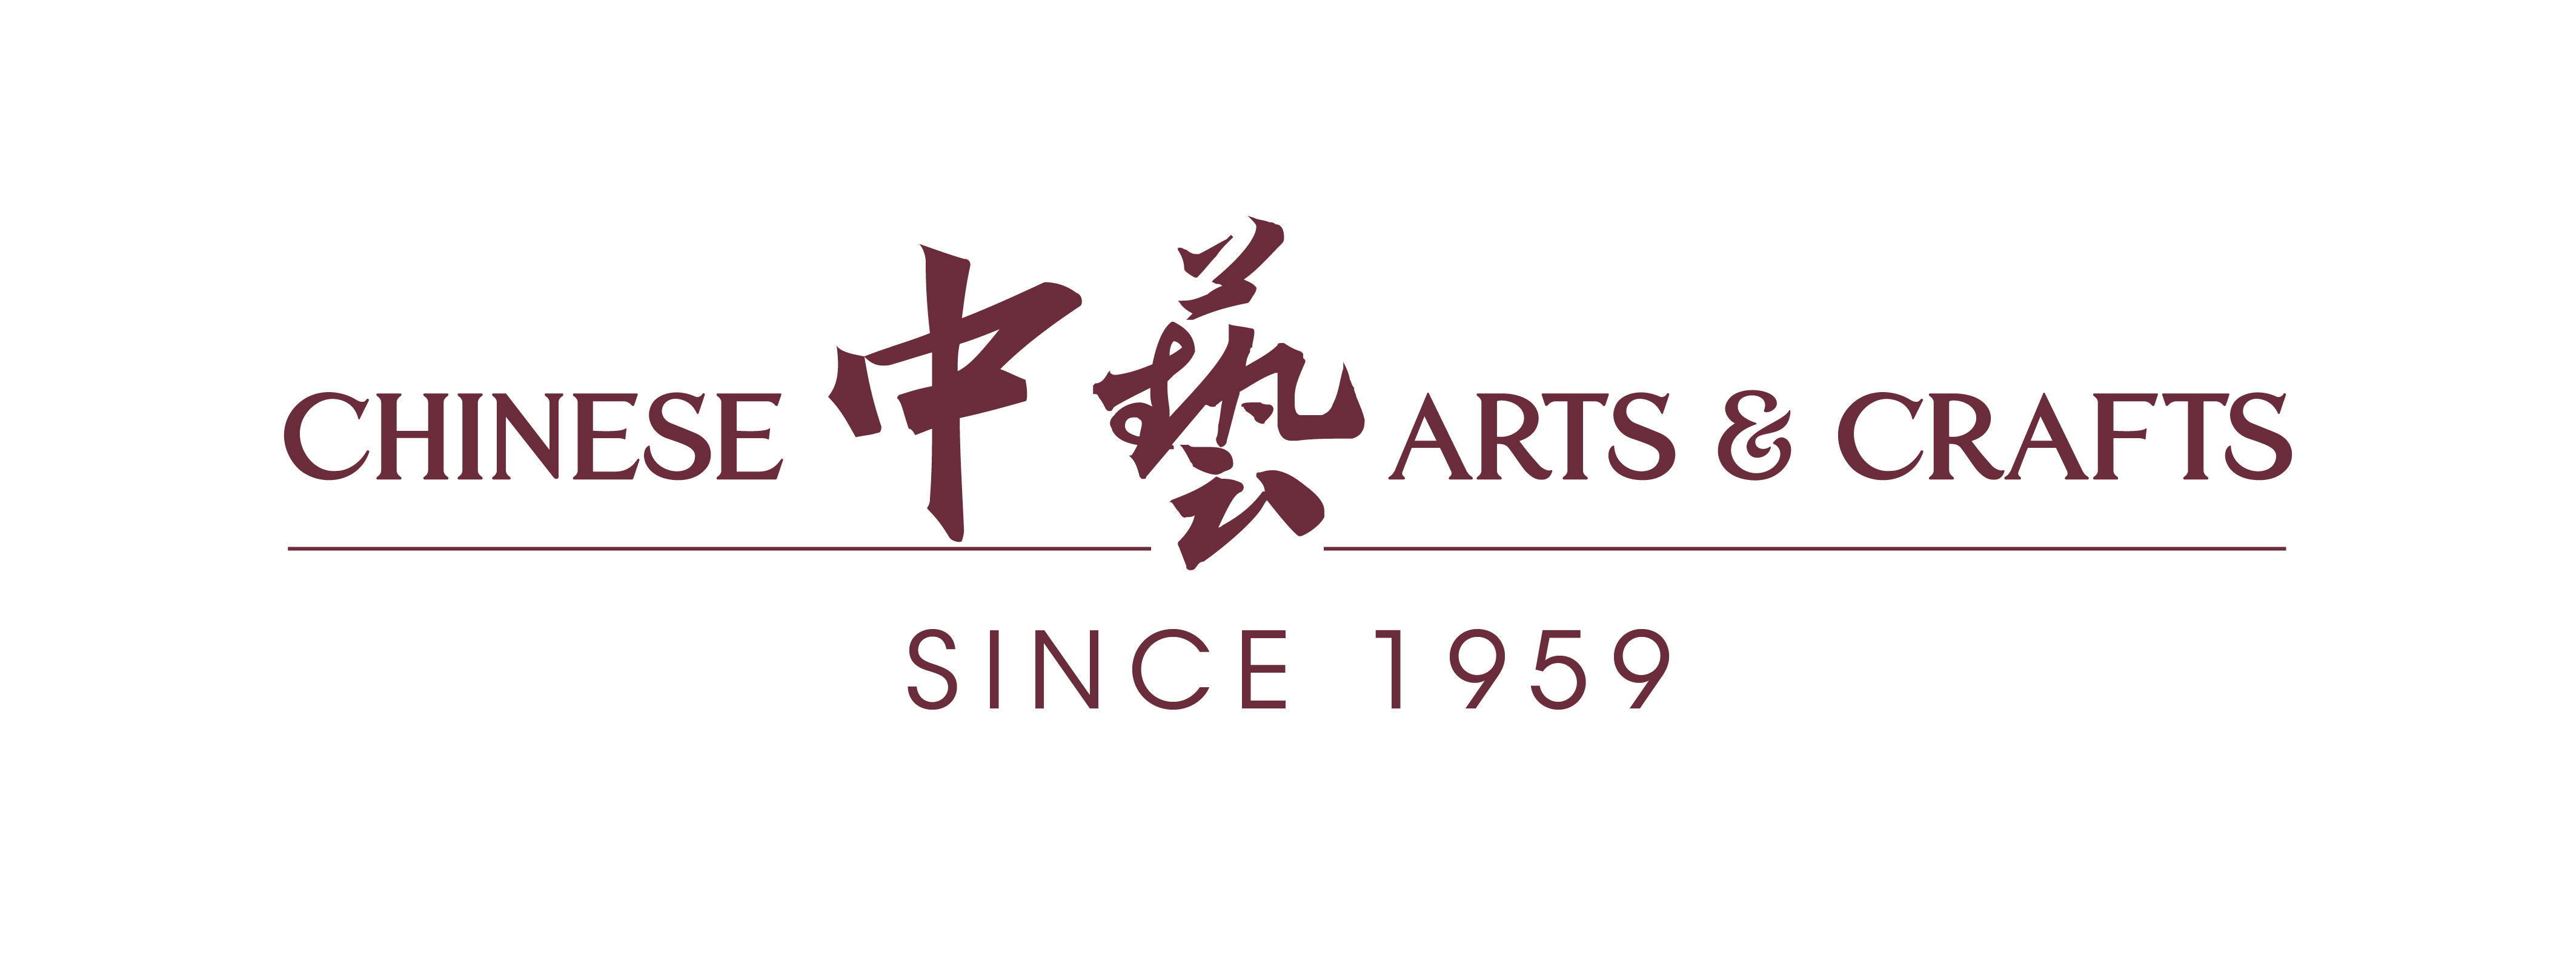 Chinese Arts & Craft